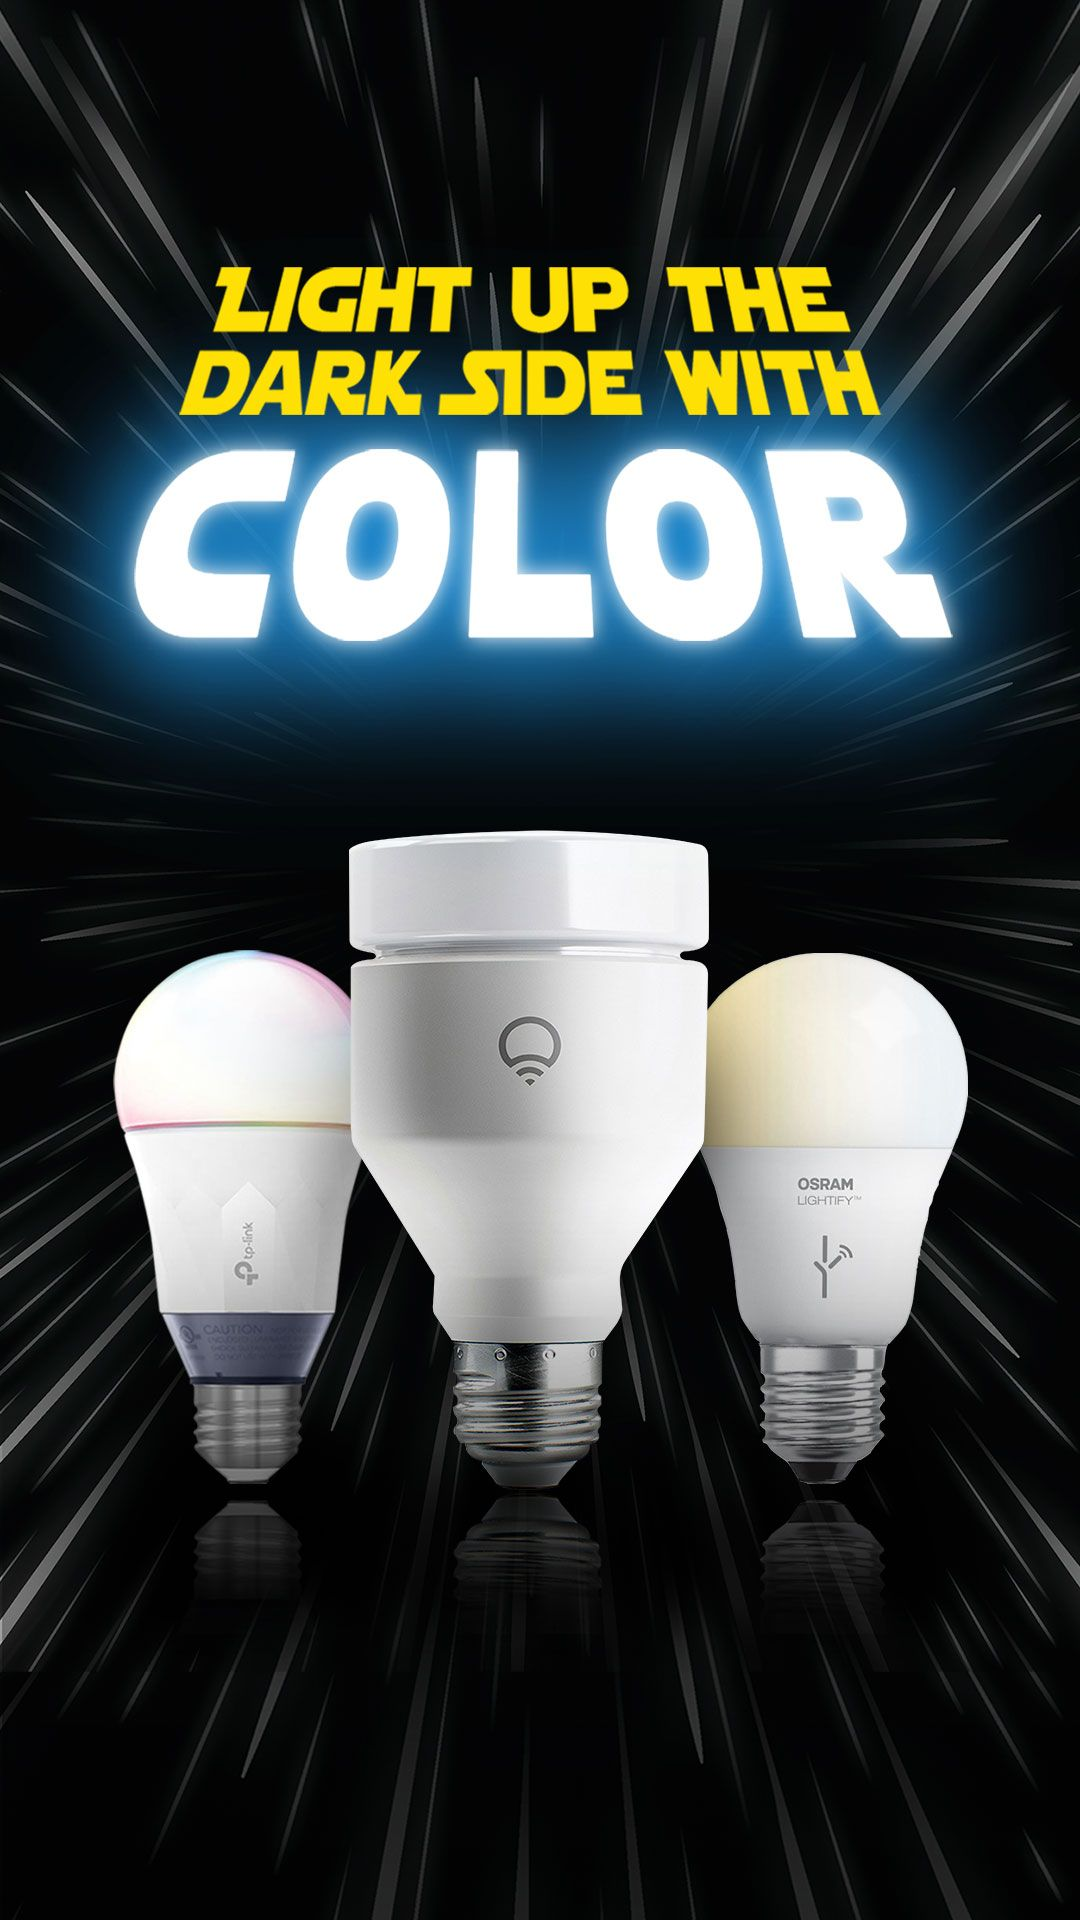 Improve Your Mood And Enhance Your Entertainment Experience With Color Changing Lighting Control With Philip Smart Home Automation Hue Philips Home Automation